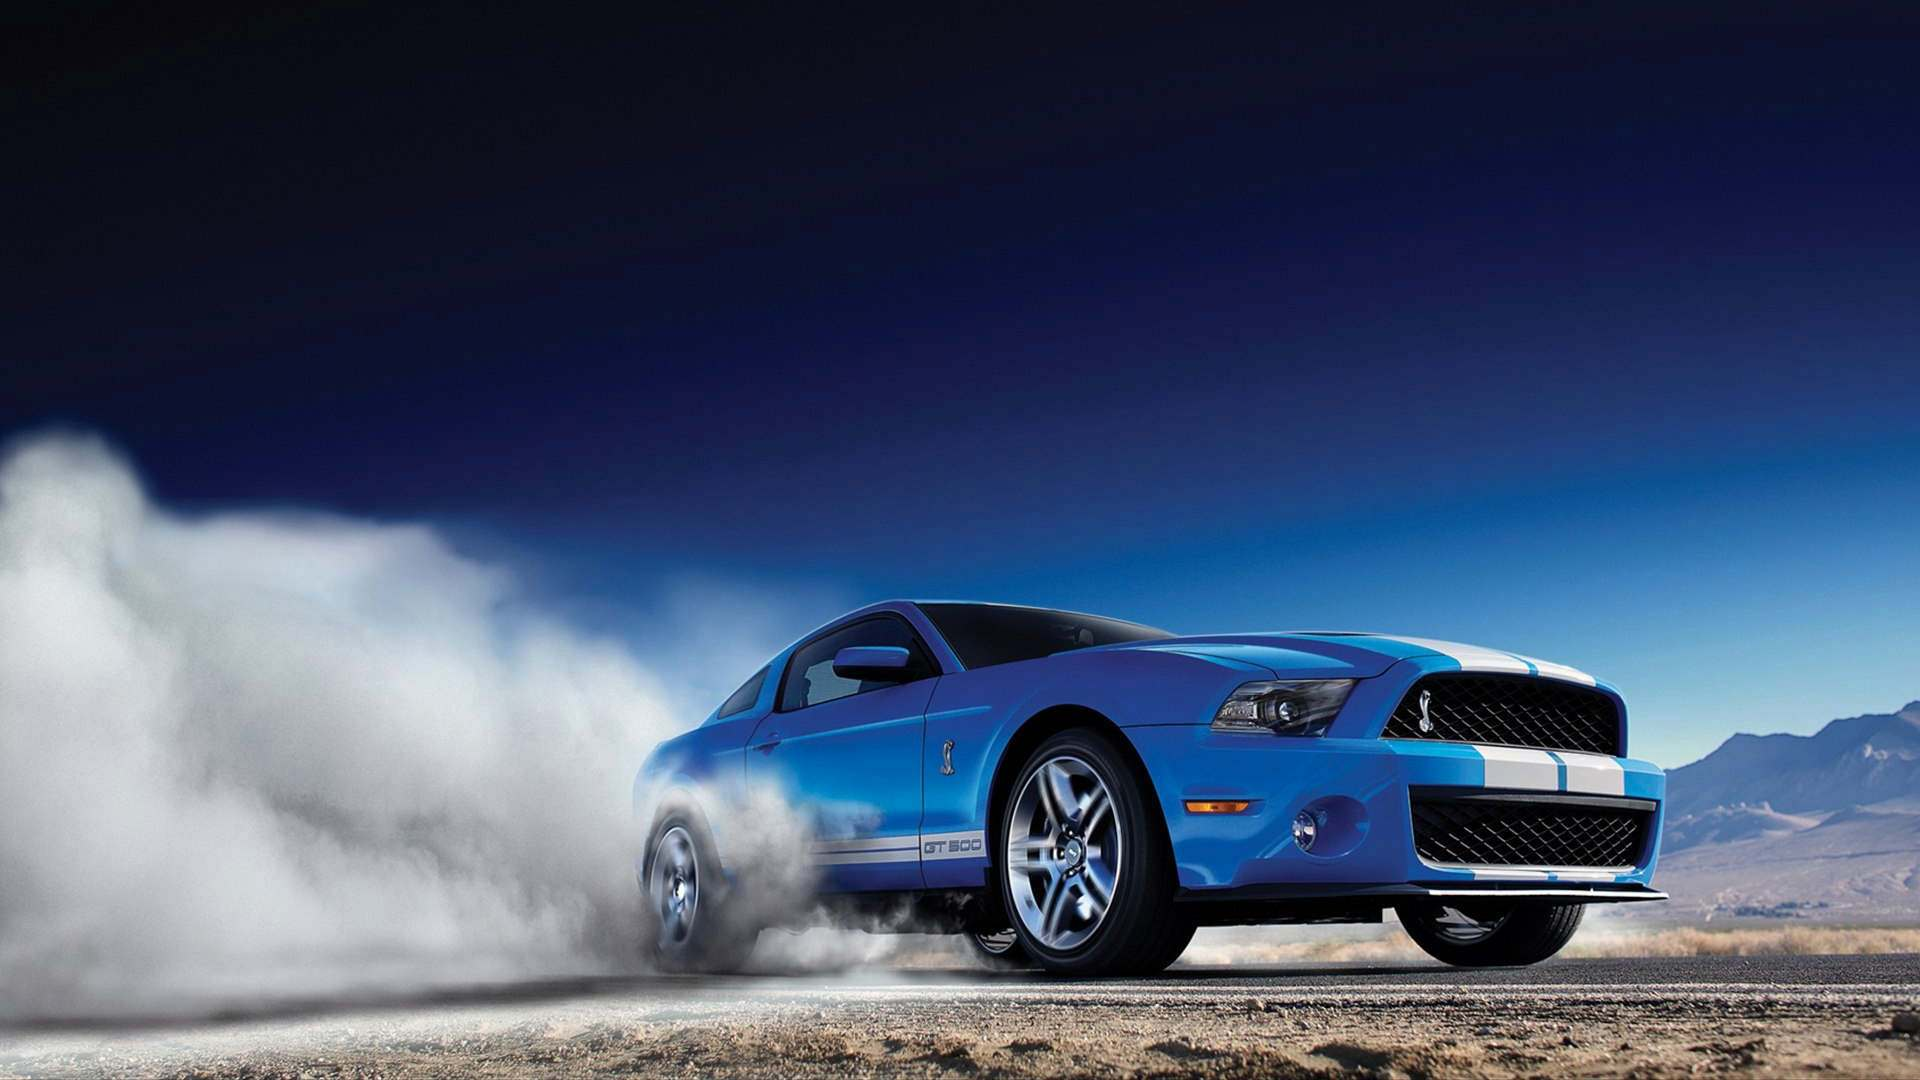 Cars Hd Wallpaper For Desktop: Wallpaper: Ford Cars HD Wallpapers